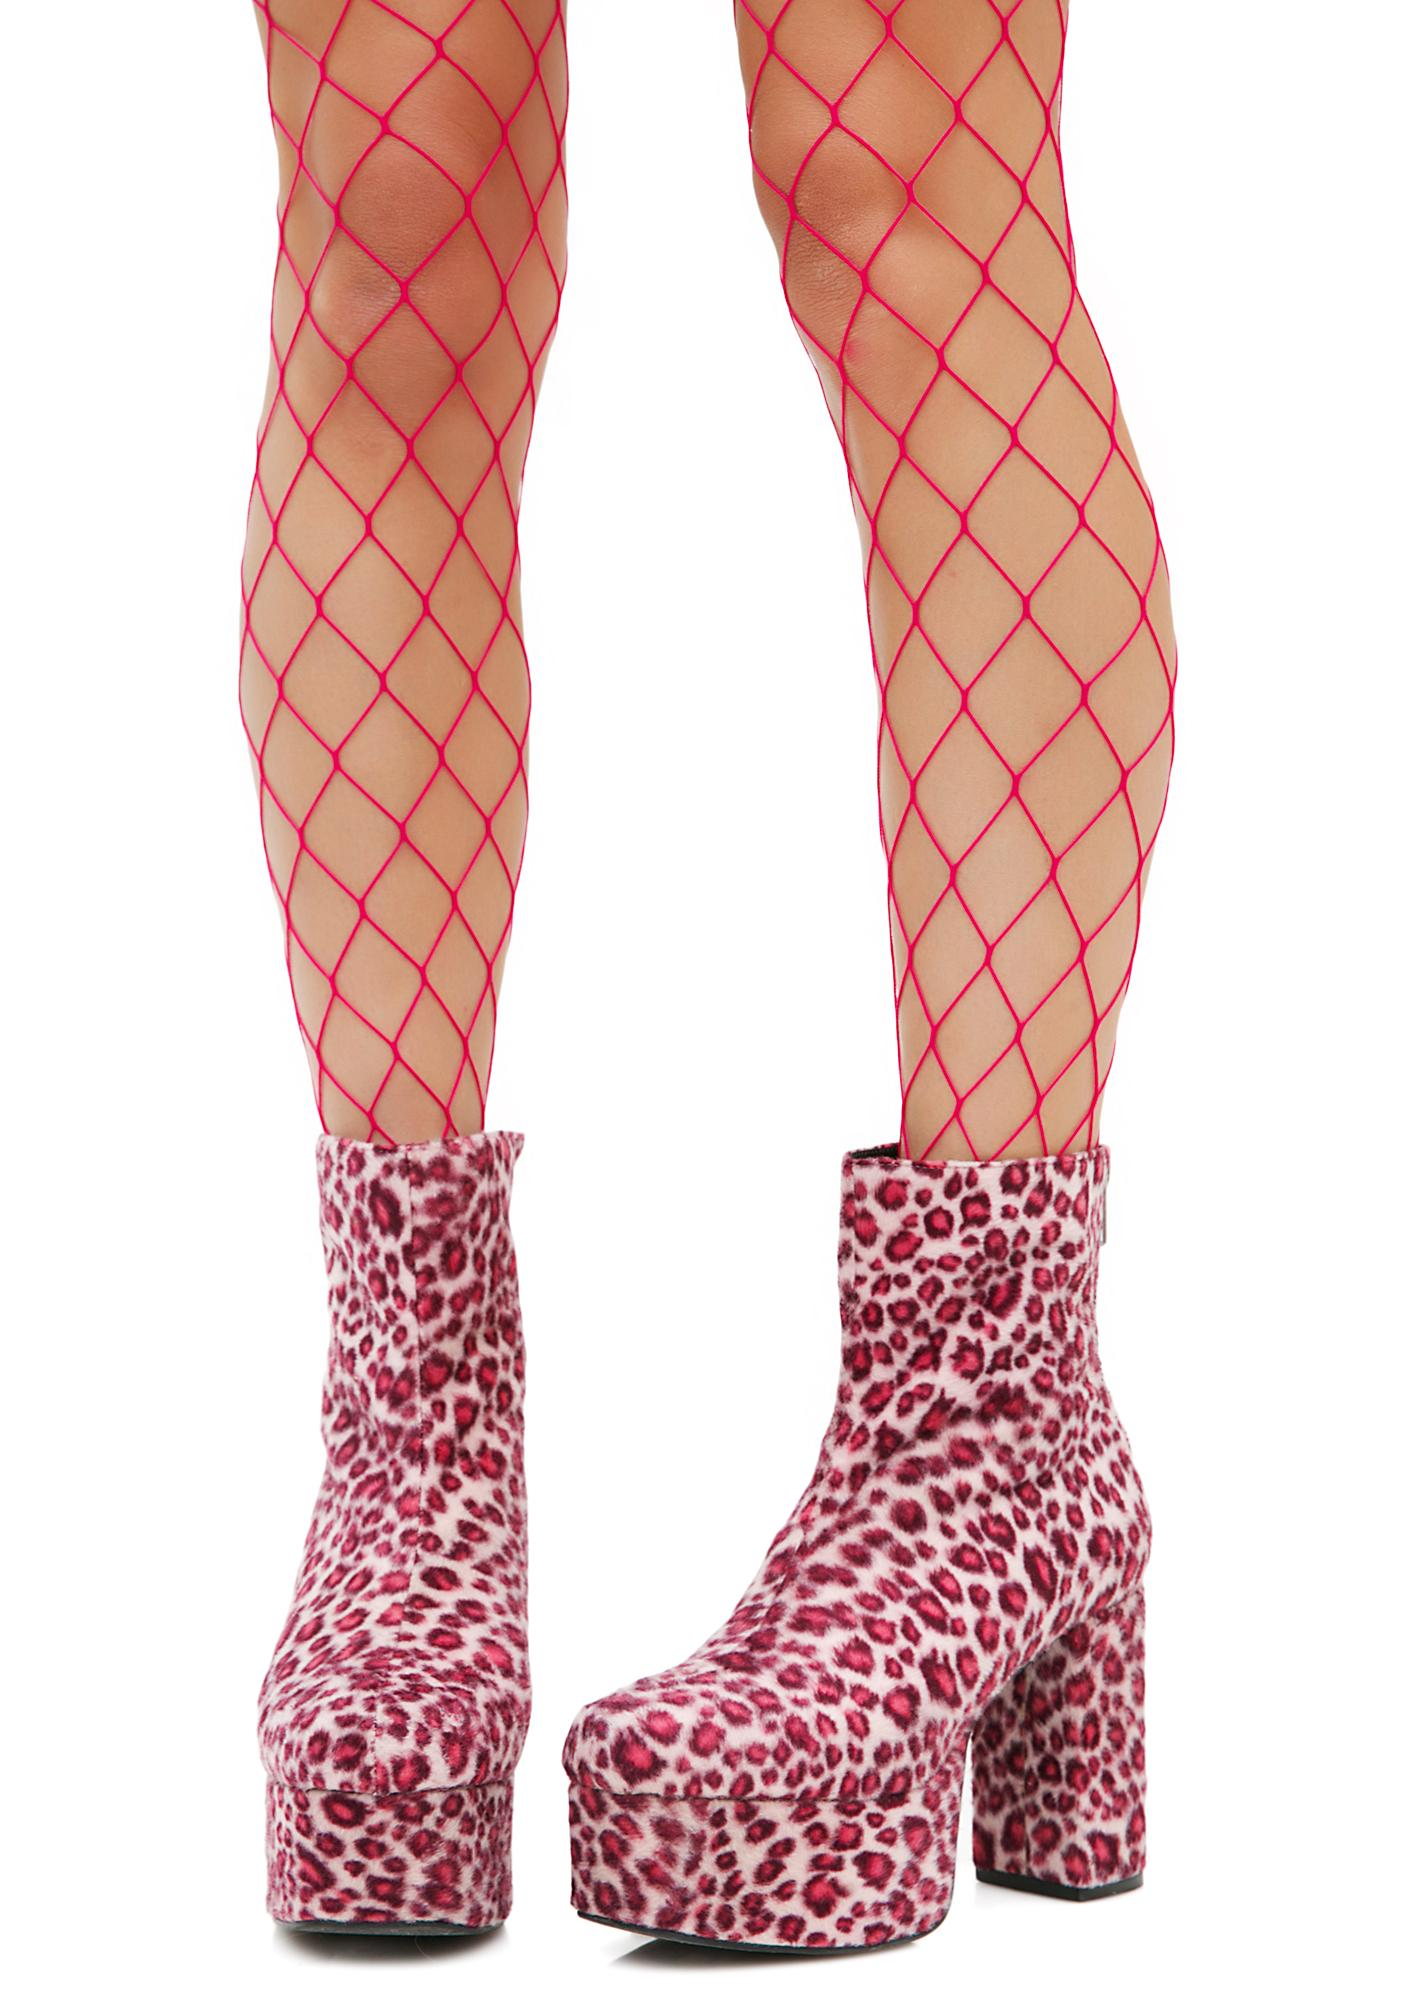 In Love Fishnet Tights